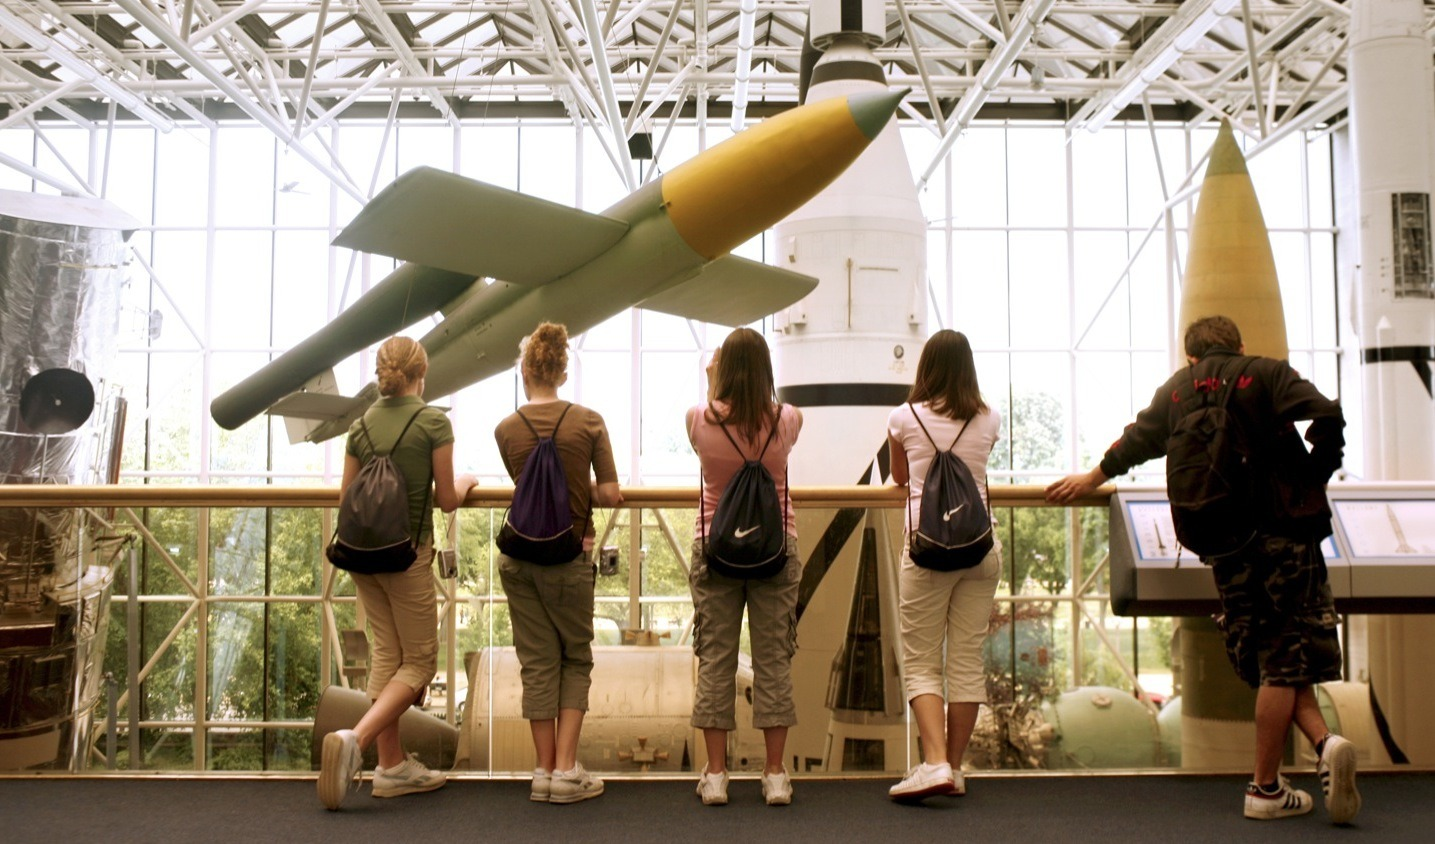 Take flight at the National Air & Space Museum